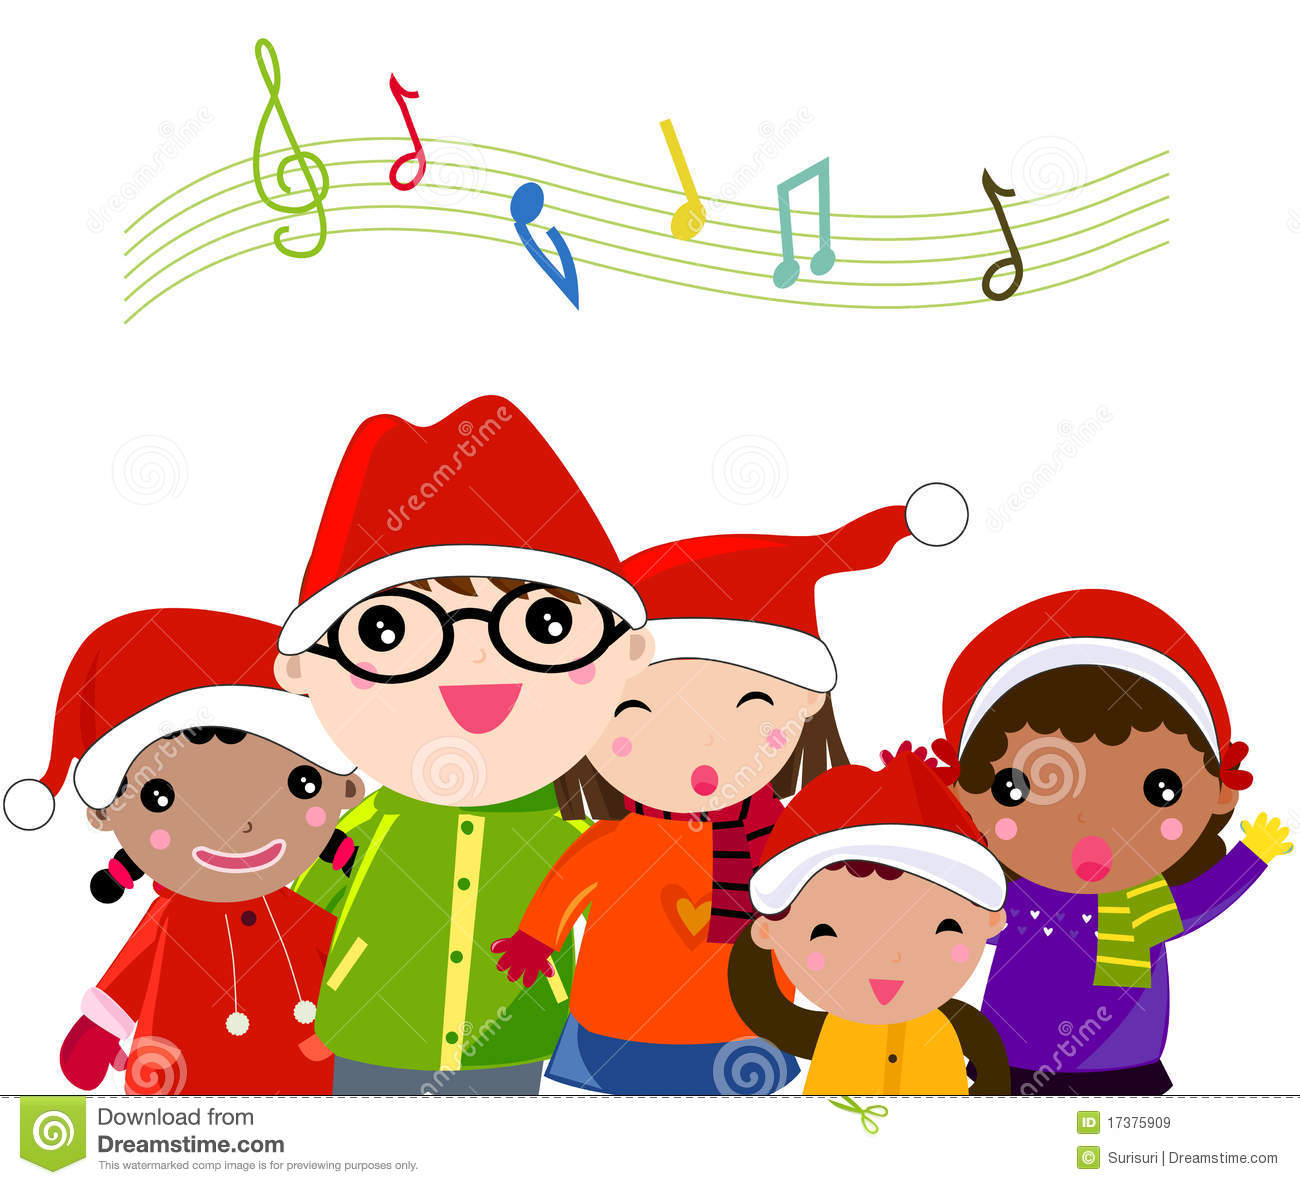 Caroling clipart concert.  collection of children